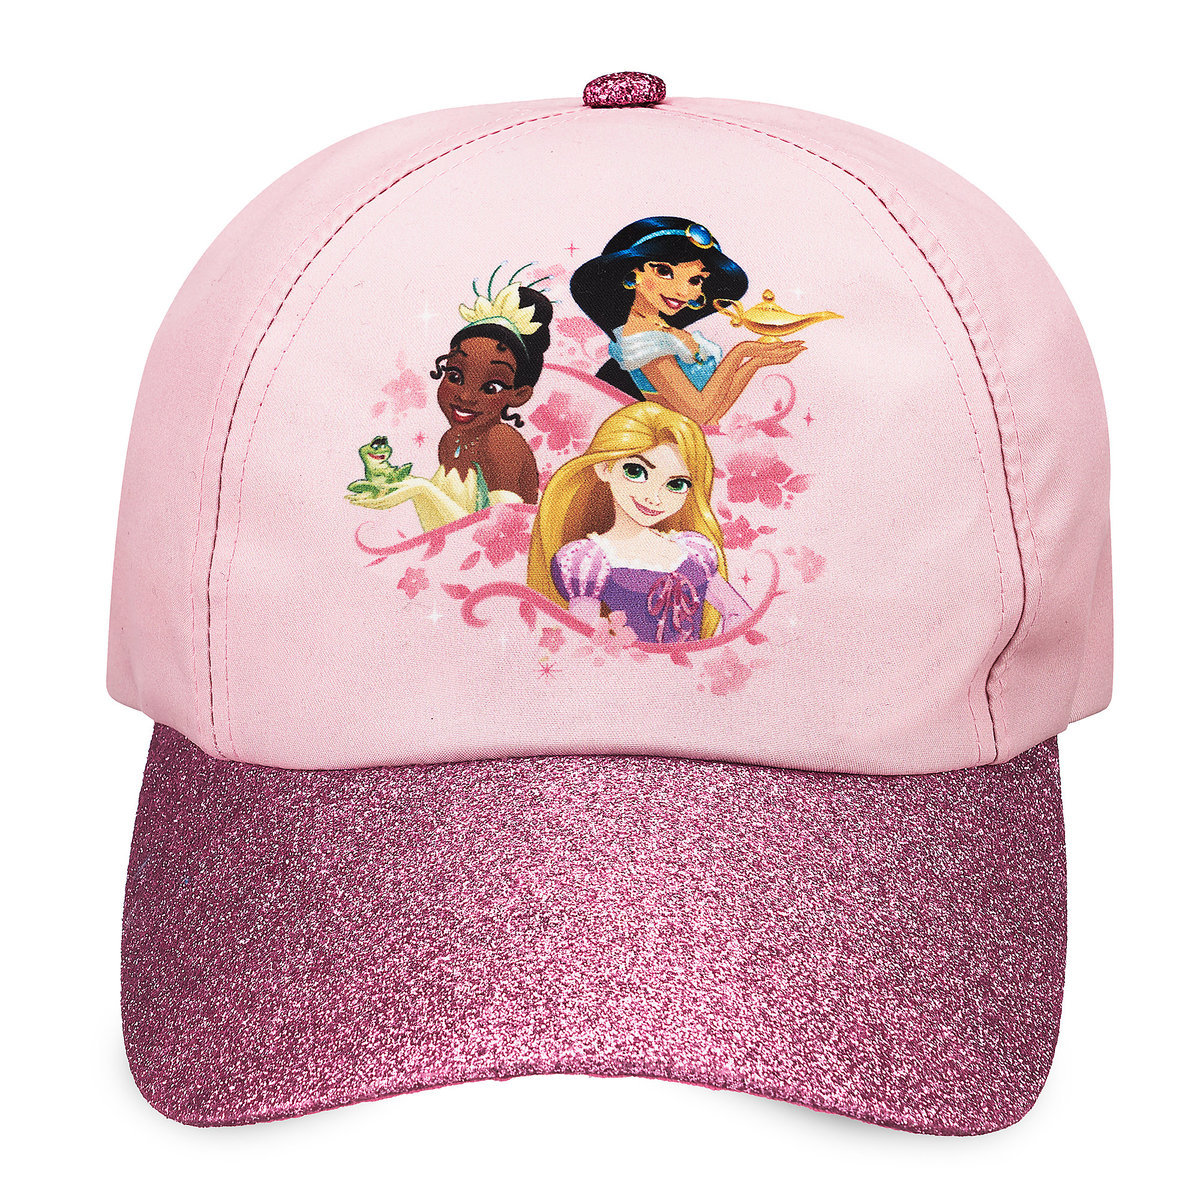 f0df2bde8e3c1 Product Image of Disney Princess Baseball Cap for Kids   1